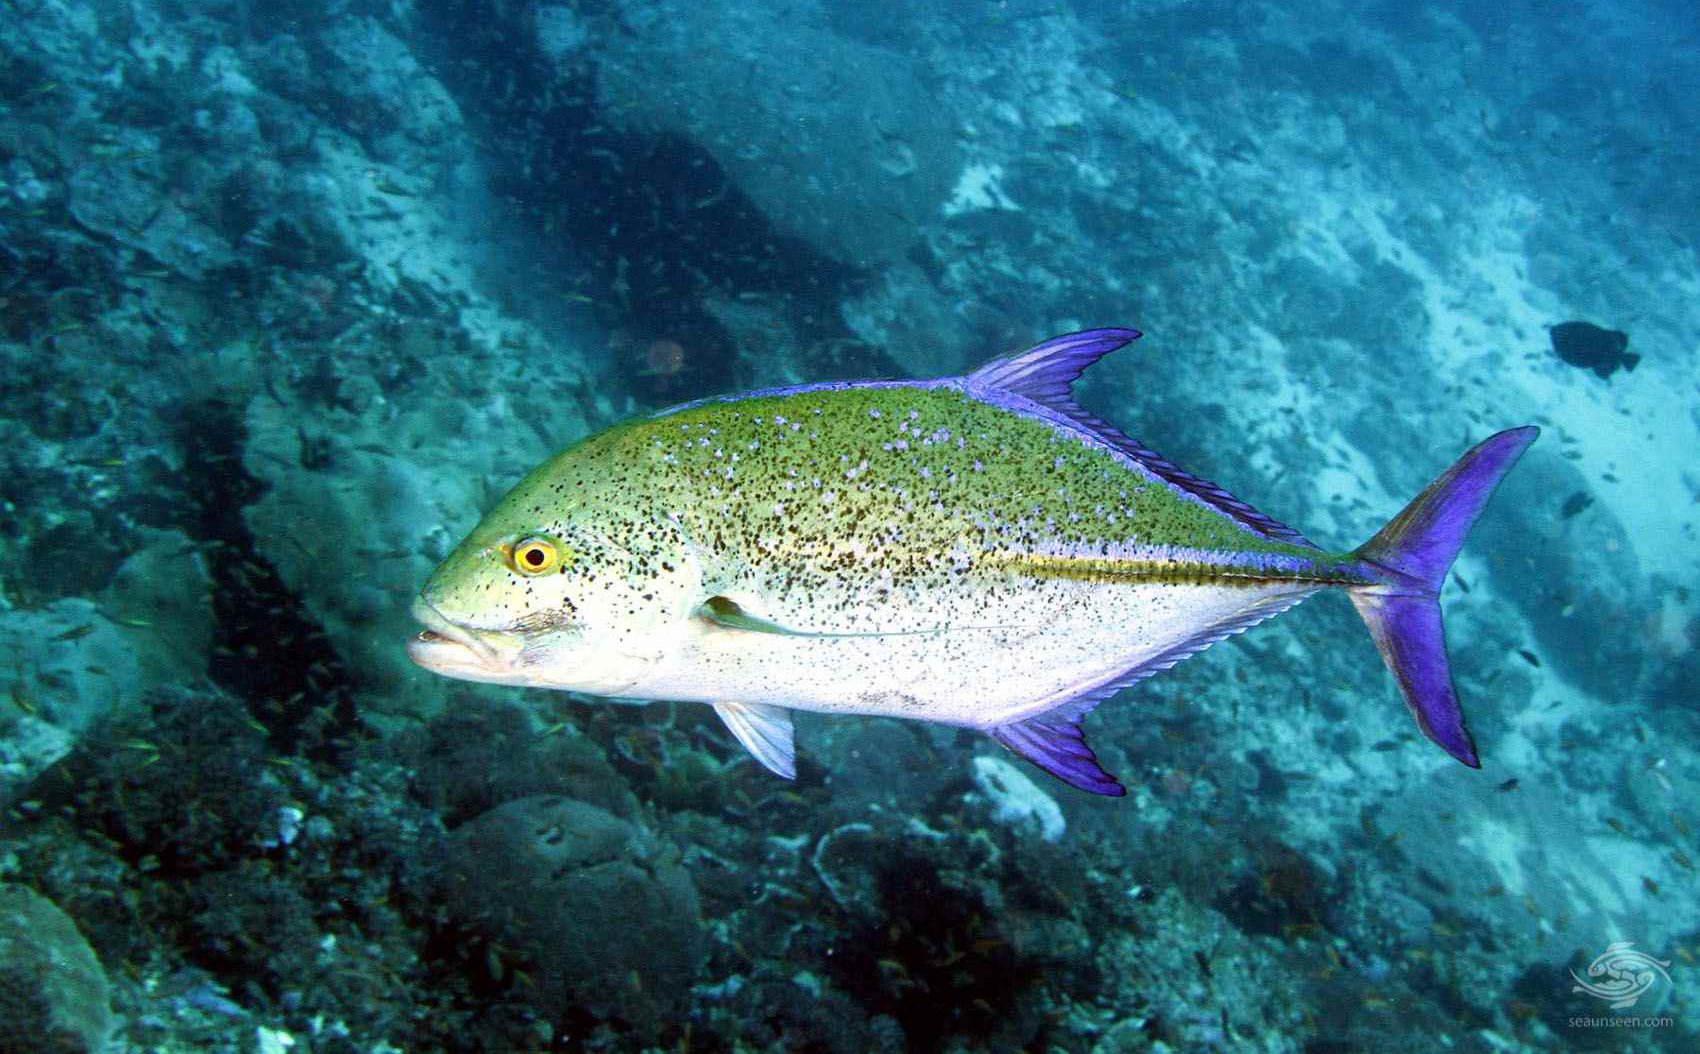 Bluefin trevally facts and photographs seaunseen for 13 fishing freefall